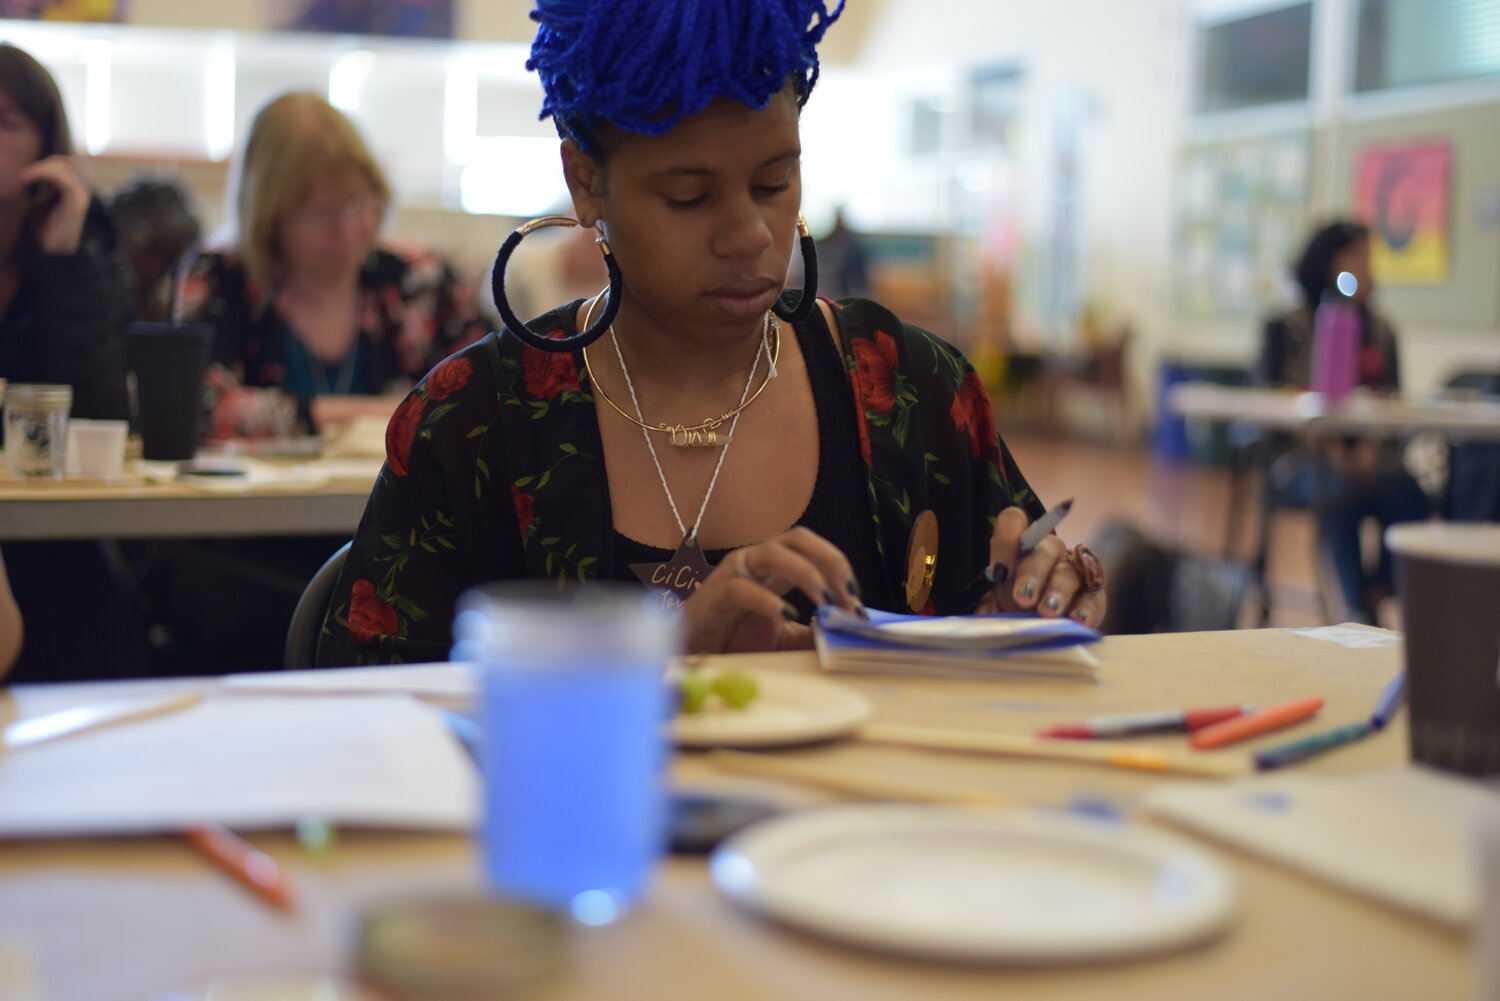 An educator explores a day of building connections between the arts and education with Studio Pathways.